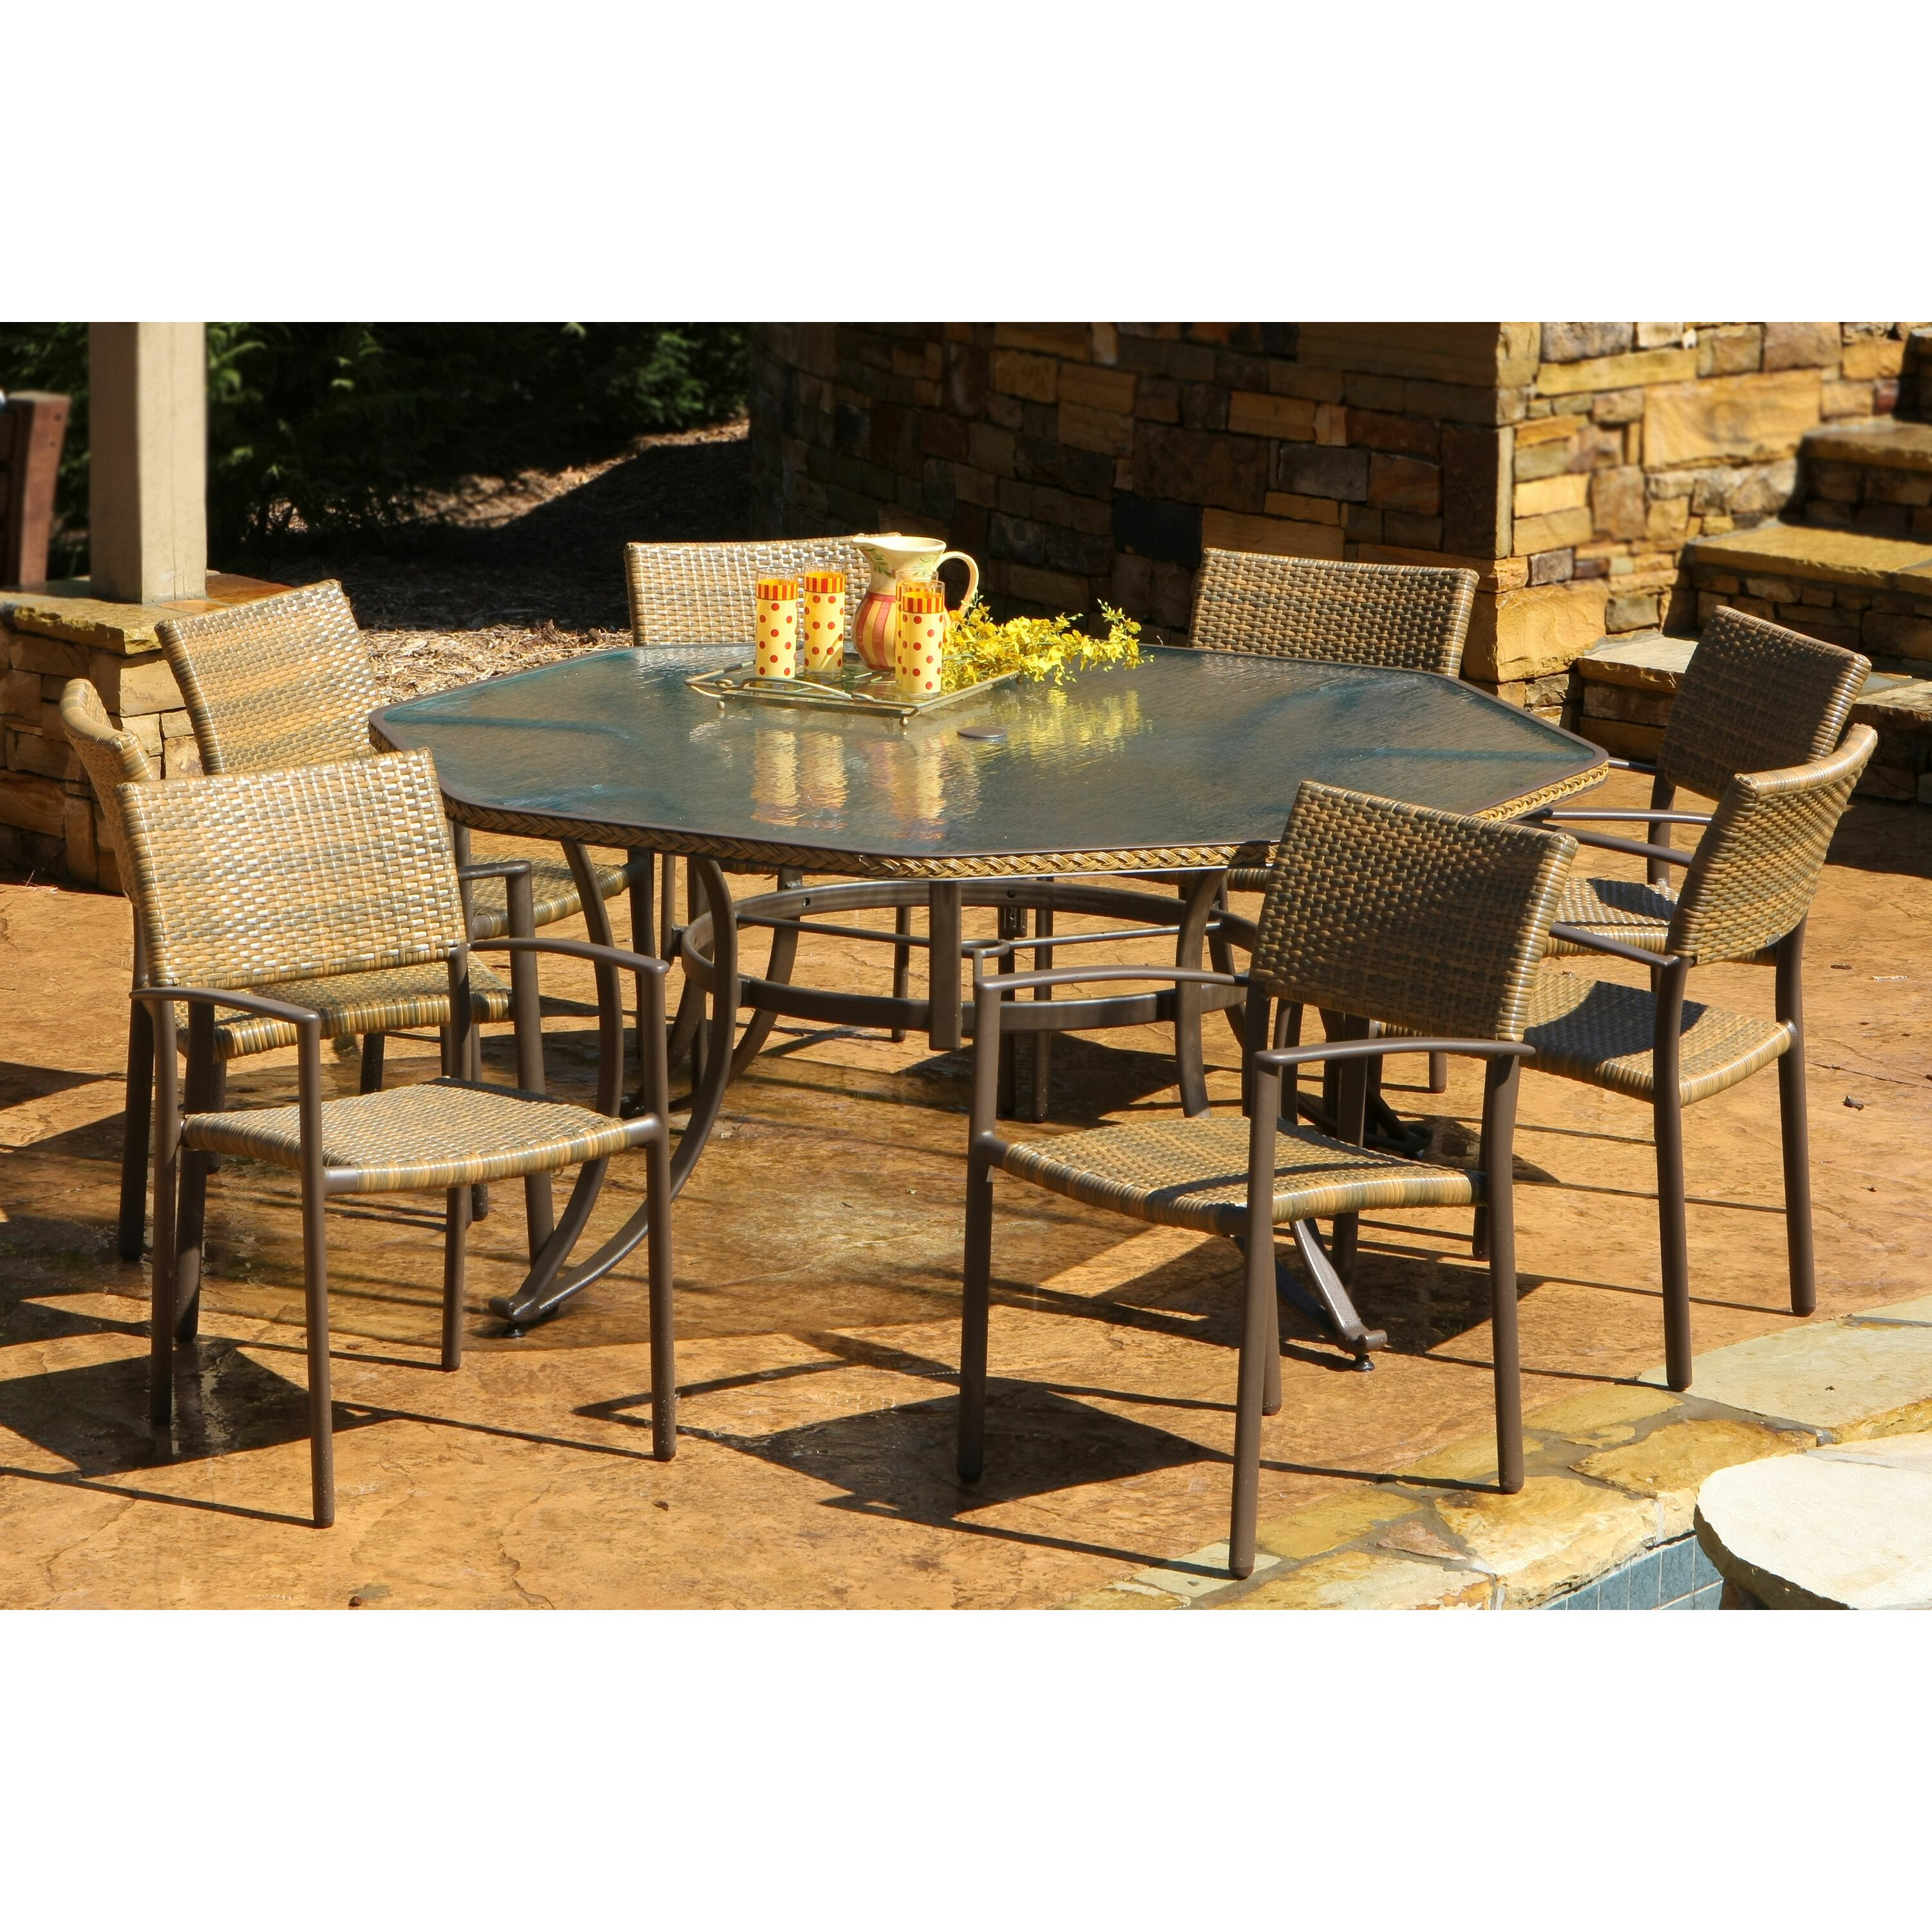 Darby home co claiborne 9 piece dining set reviews wayfair for Outdoor furniture 9 piece